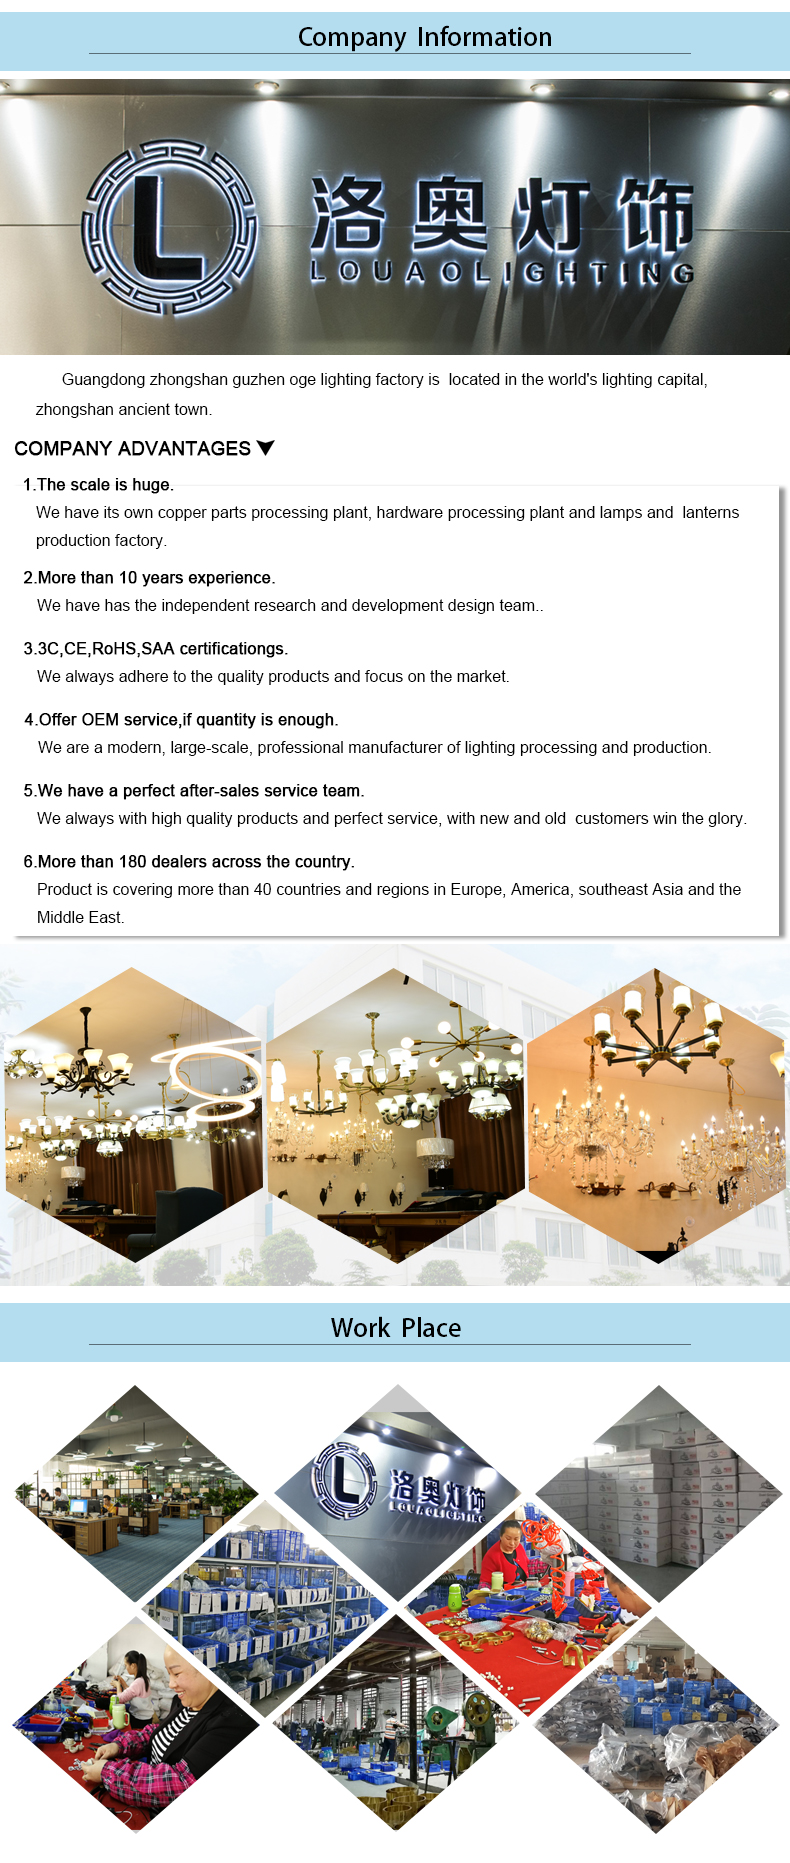 Hot selling promotionele kristallen kroonluchter goud voor wedding event luxe mooie k9 kristallen lamp